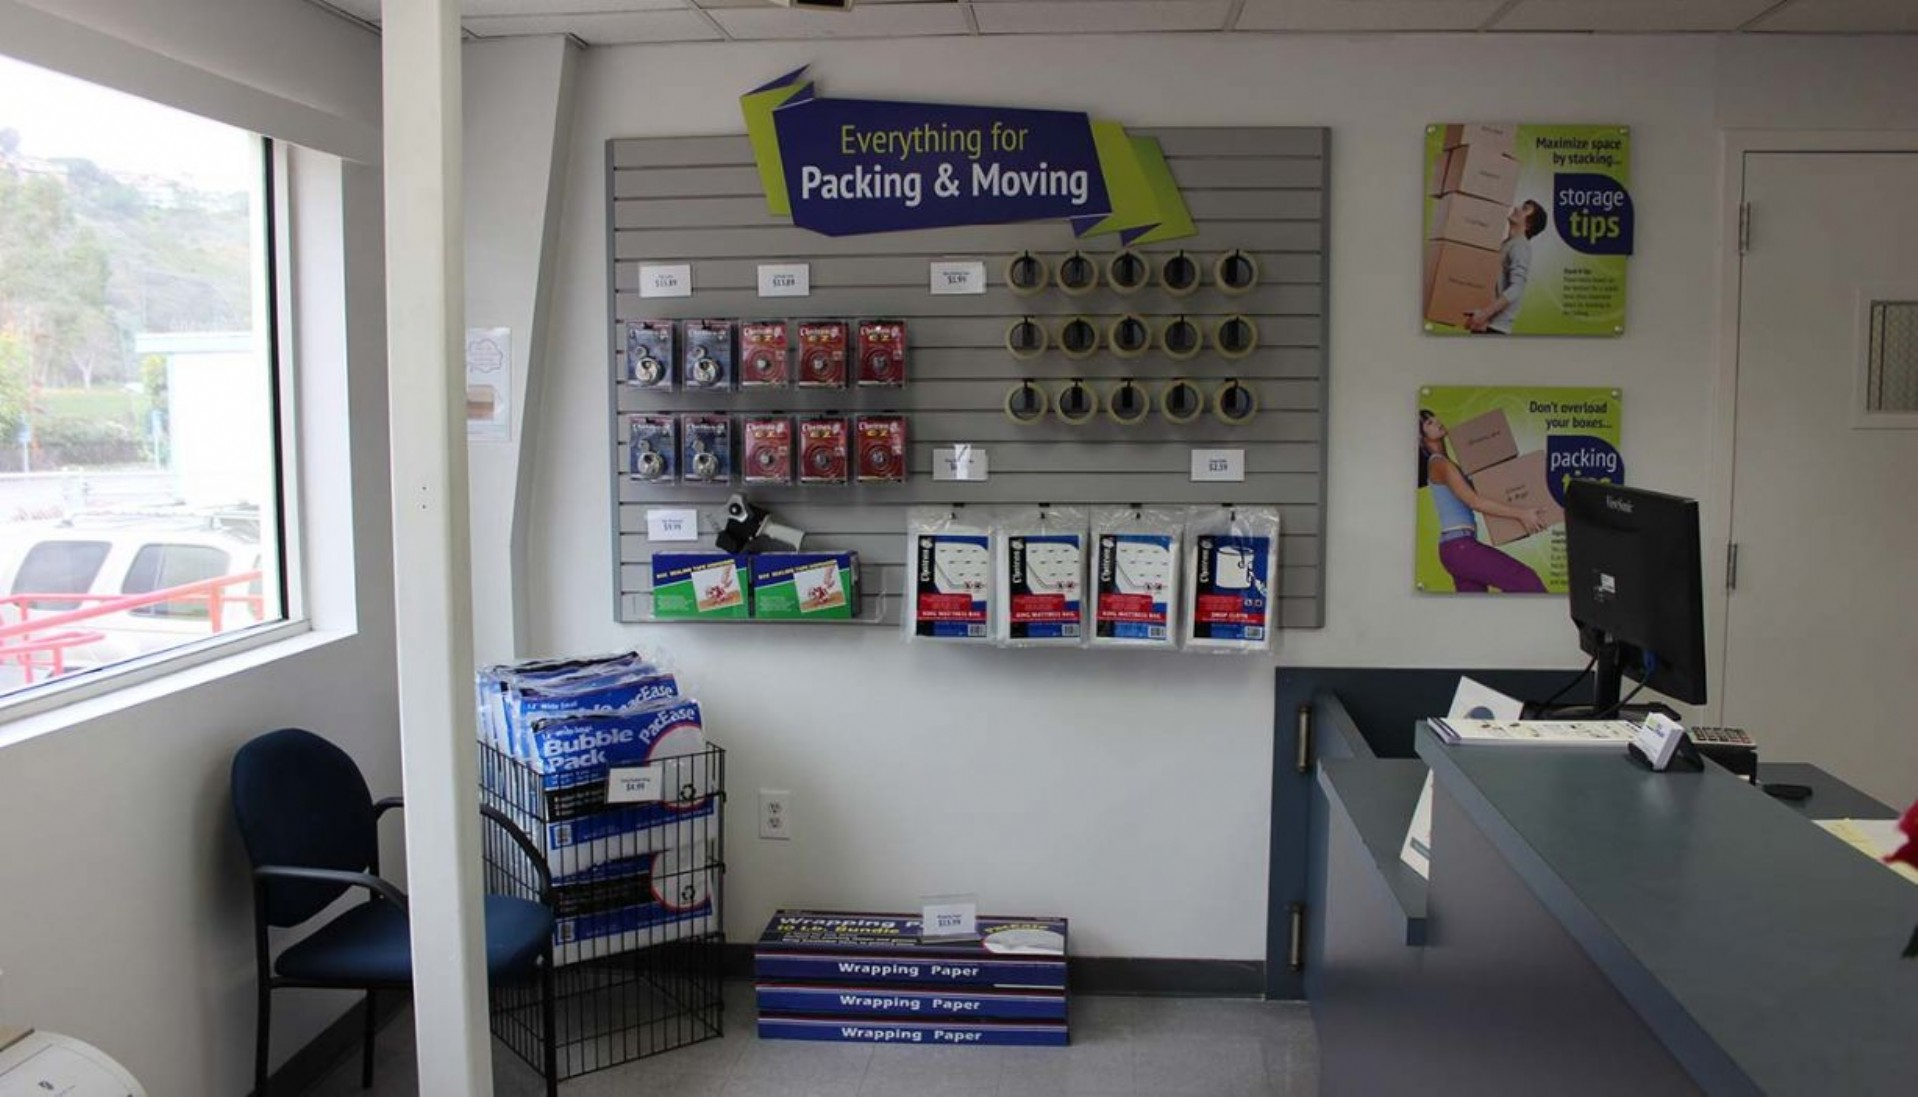 Storage rental office merchandise display wall with packing and moving supplies